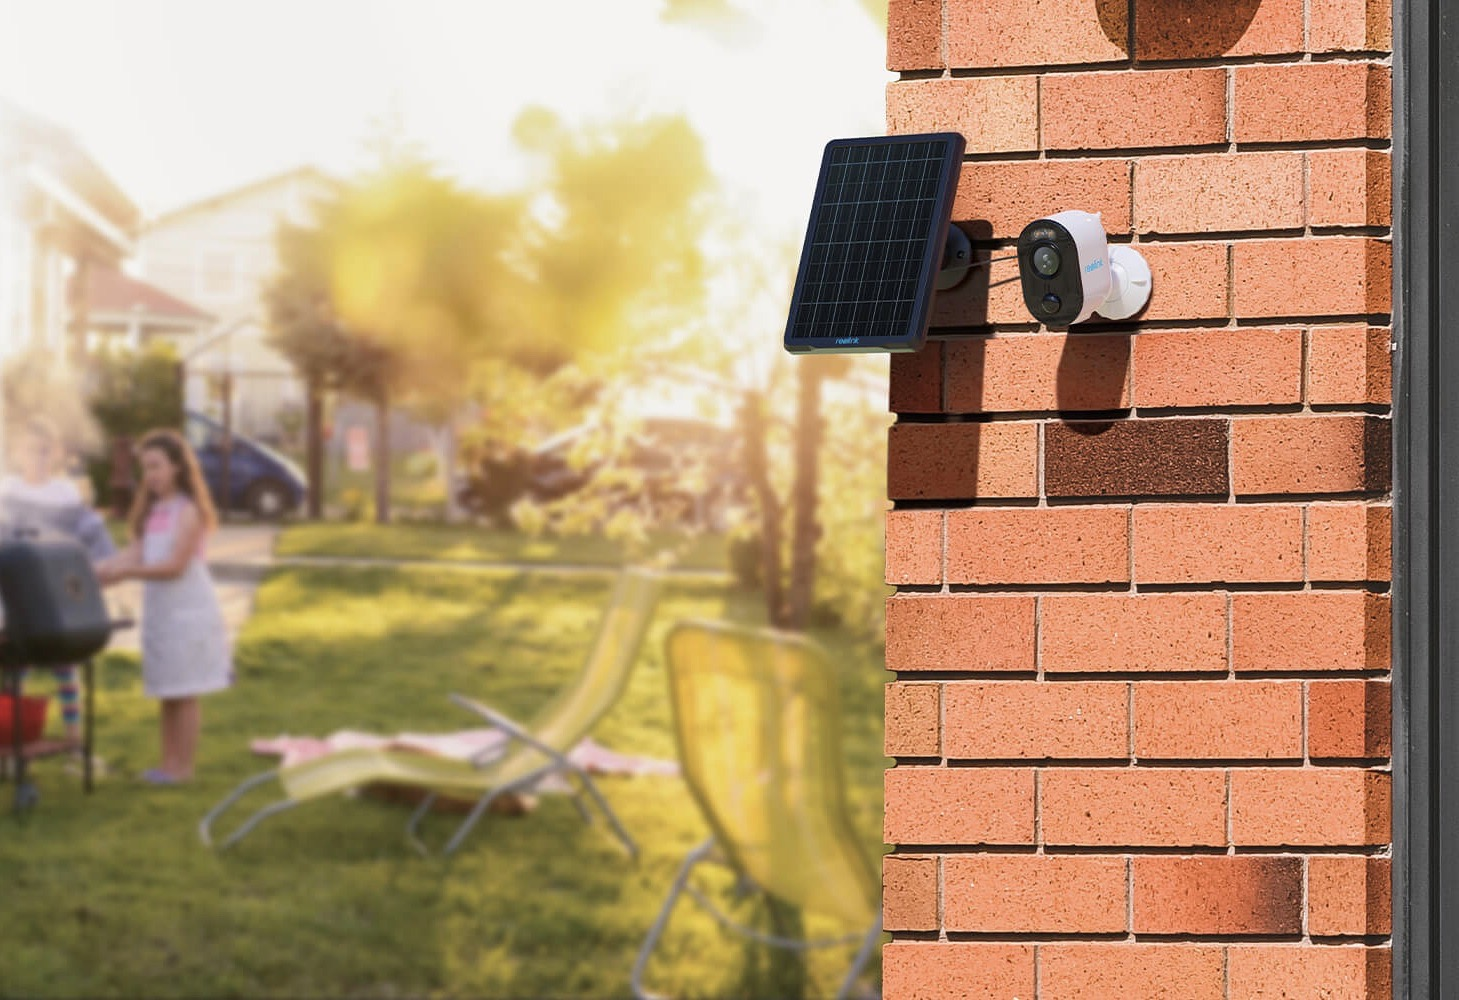 Reolink Argus 3 and solar panel mounted on a brick wall near a yard